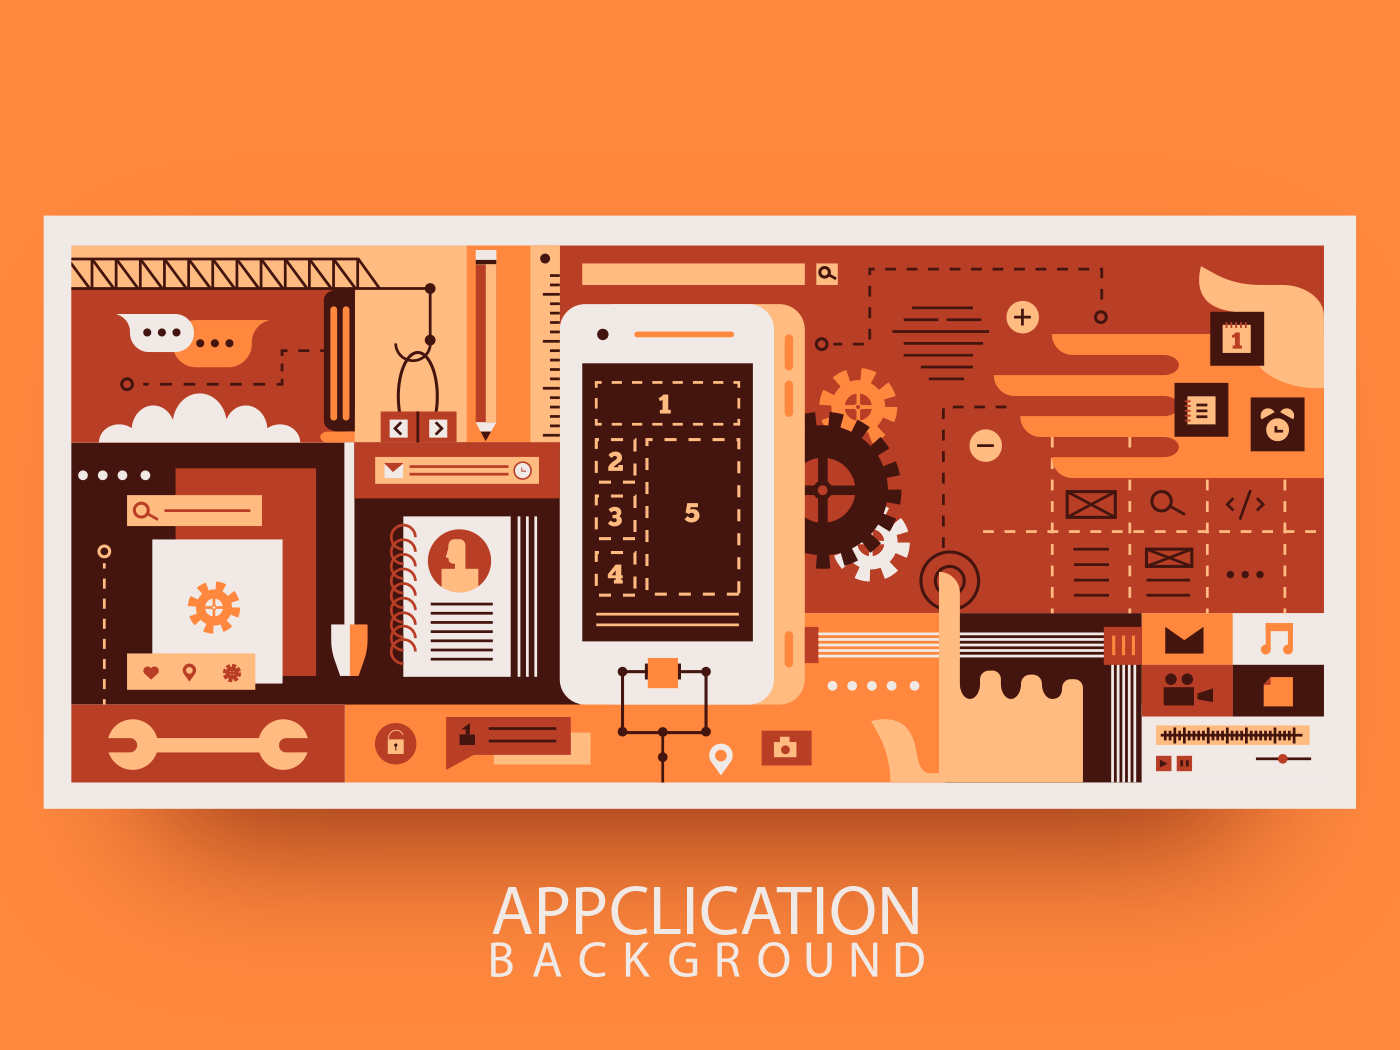 App design for mobile phone abstract background